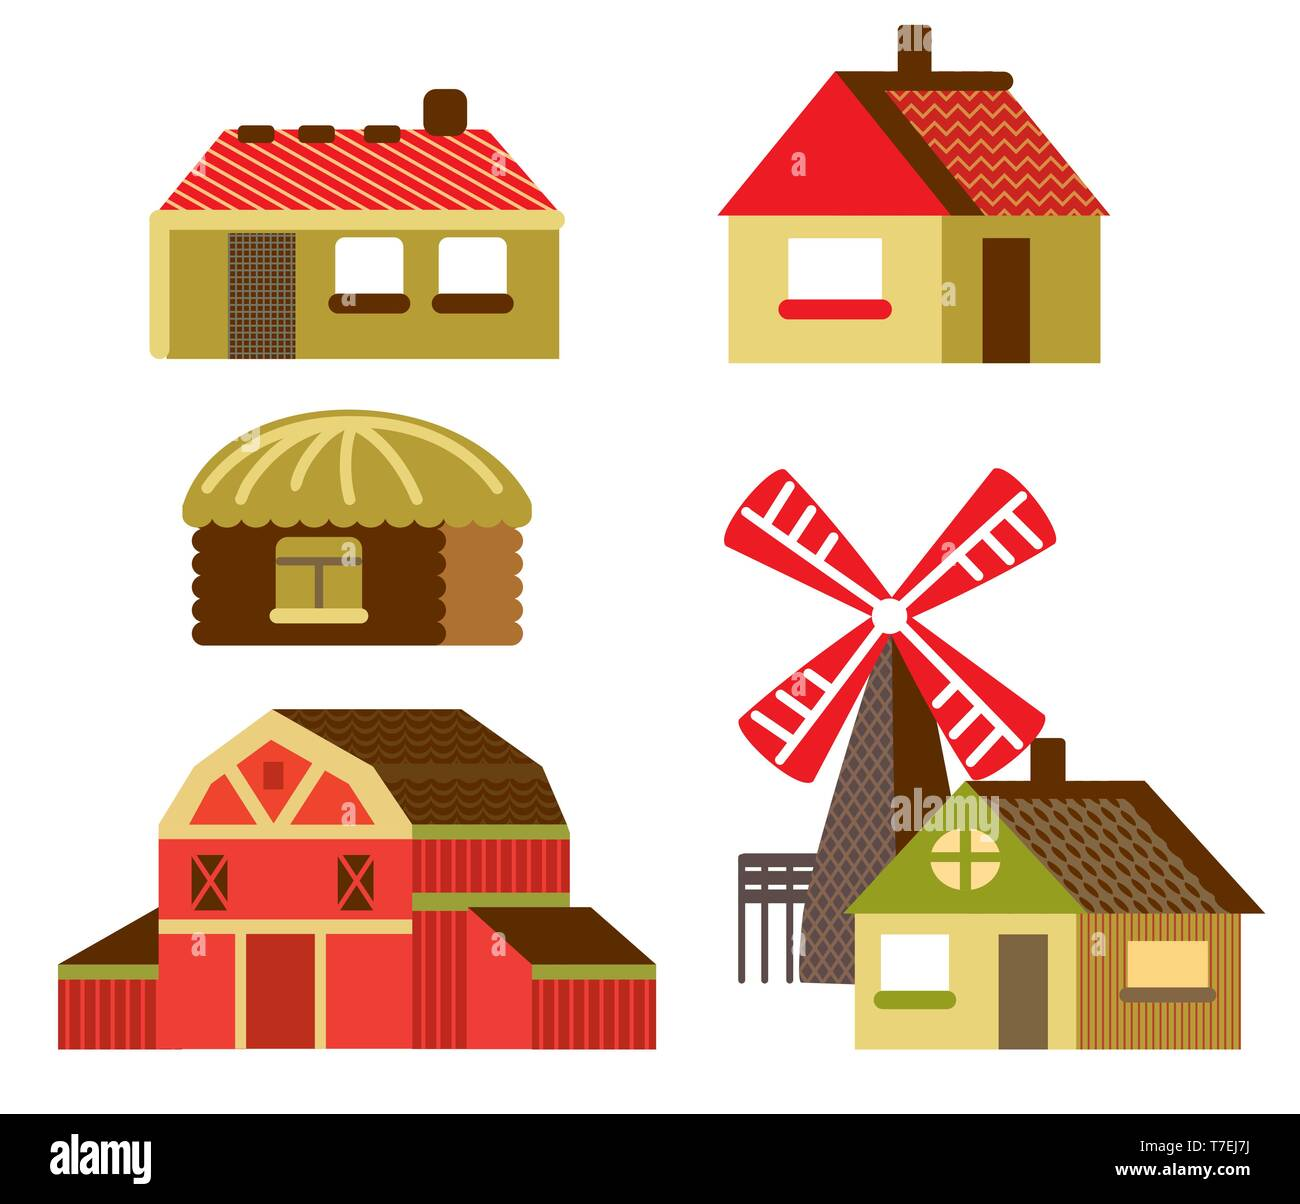 Colorful decorative set of outline red cartoon Barn, mill and country houses. Farm vector cartoon flat illustration in different colors isolated on wh - Stock Image